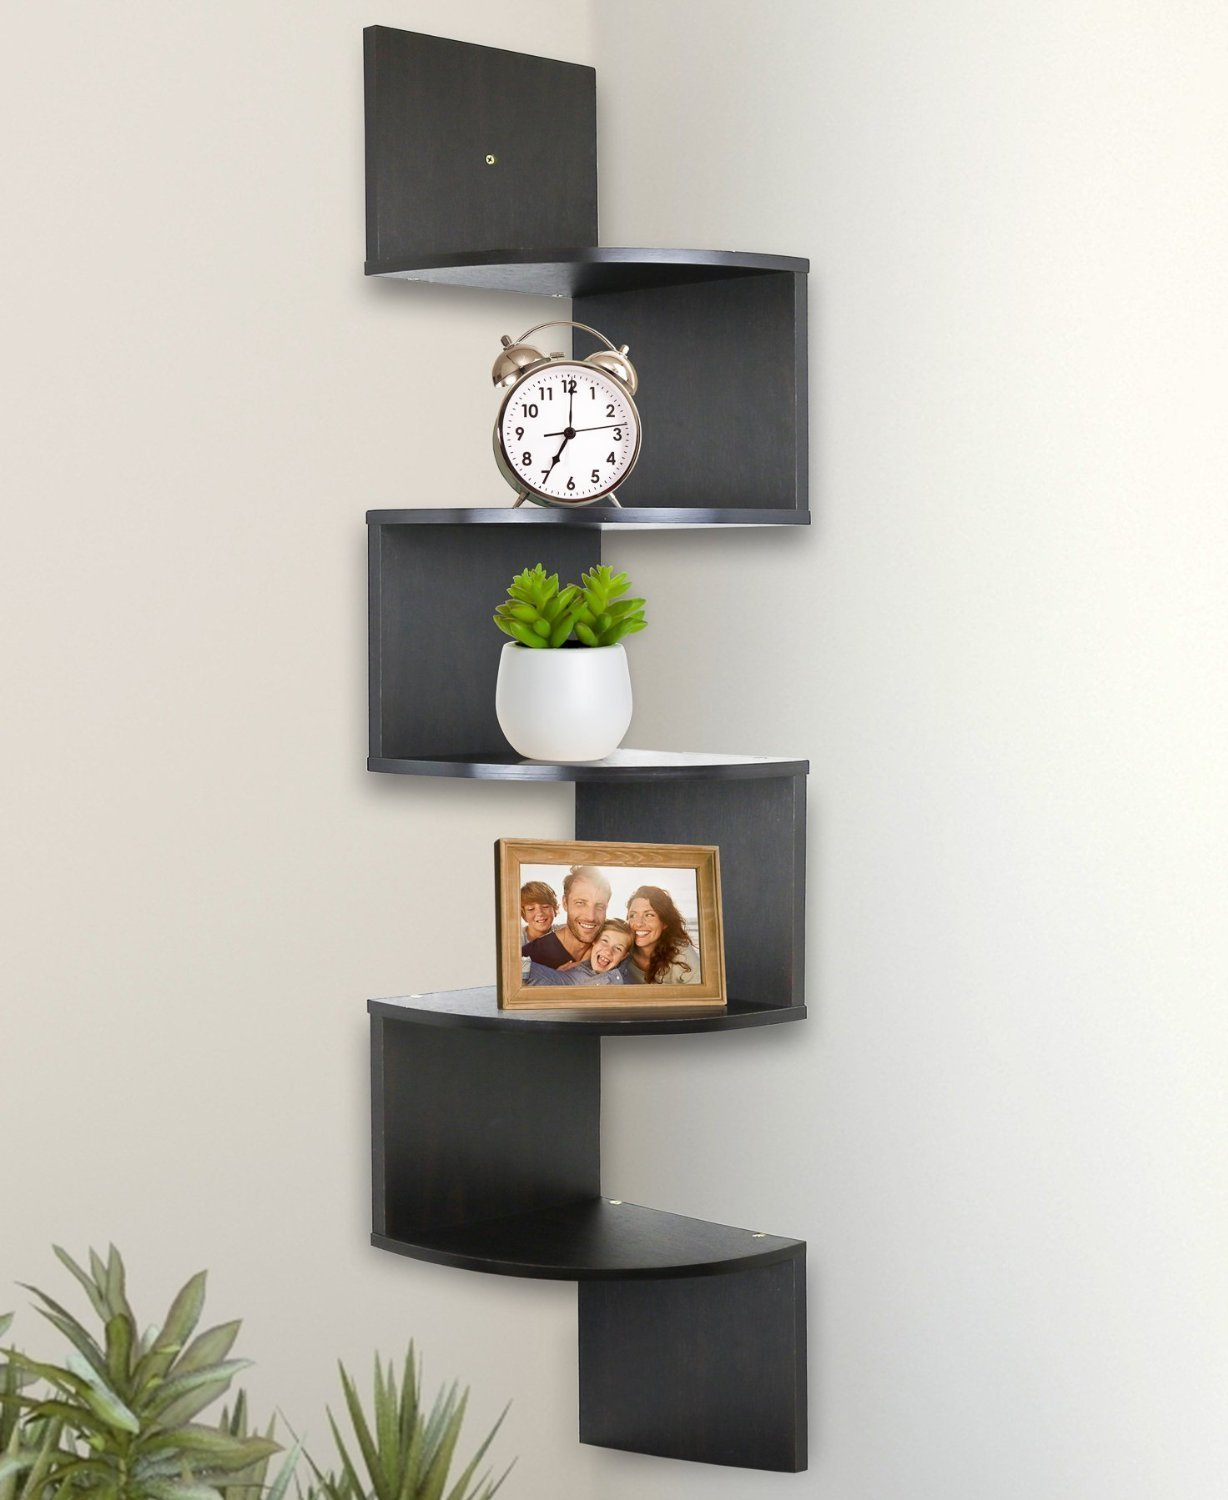 room corner white furniture living unit shelf shelves floating